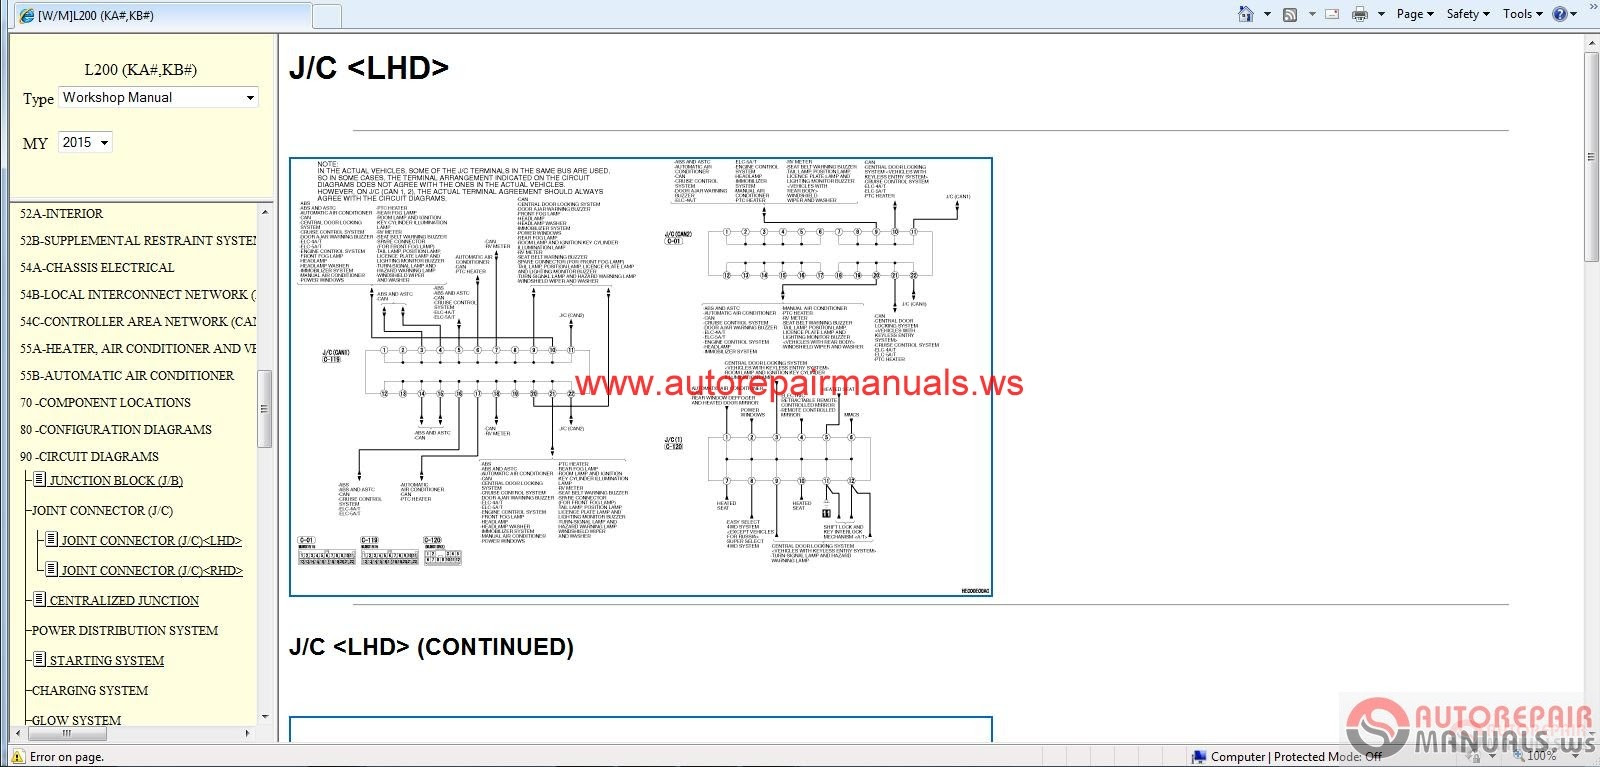 Mitsubishi Pajero 94 Wiring Diagram Books Of L200 Alternator Free Auto Repair Manual 2015 Service